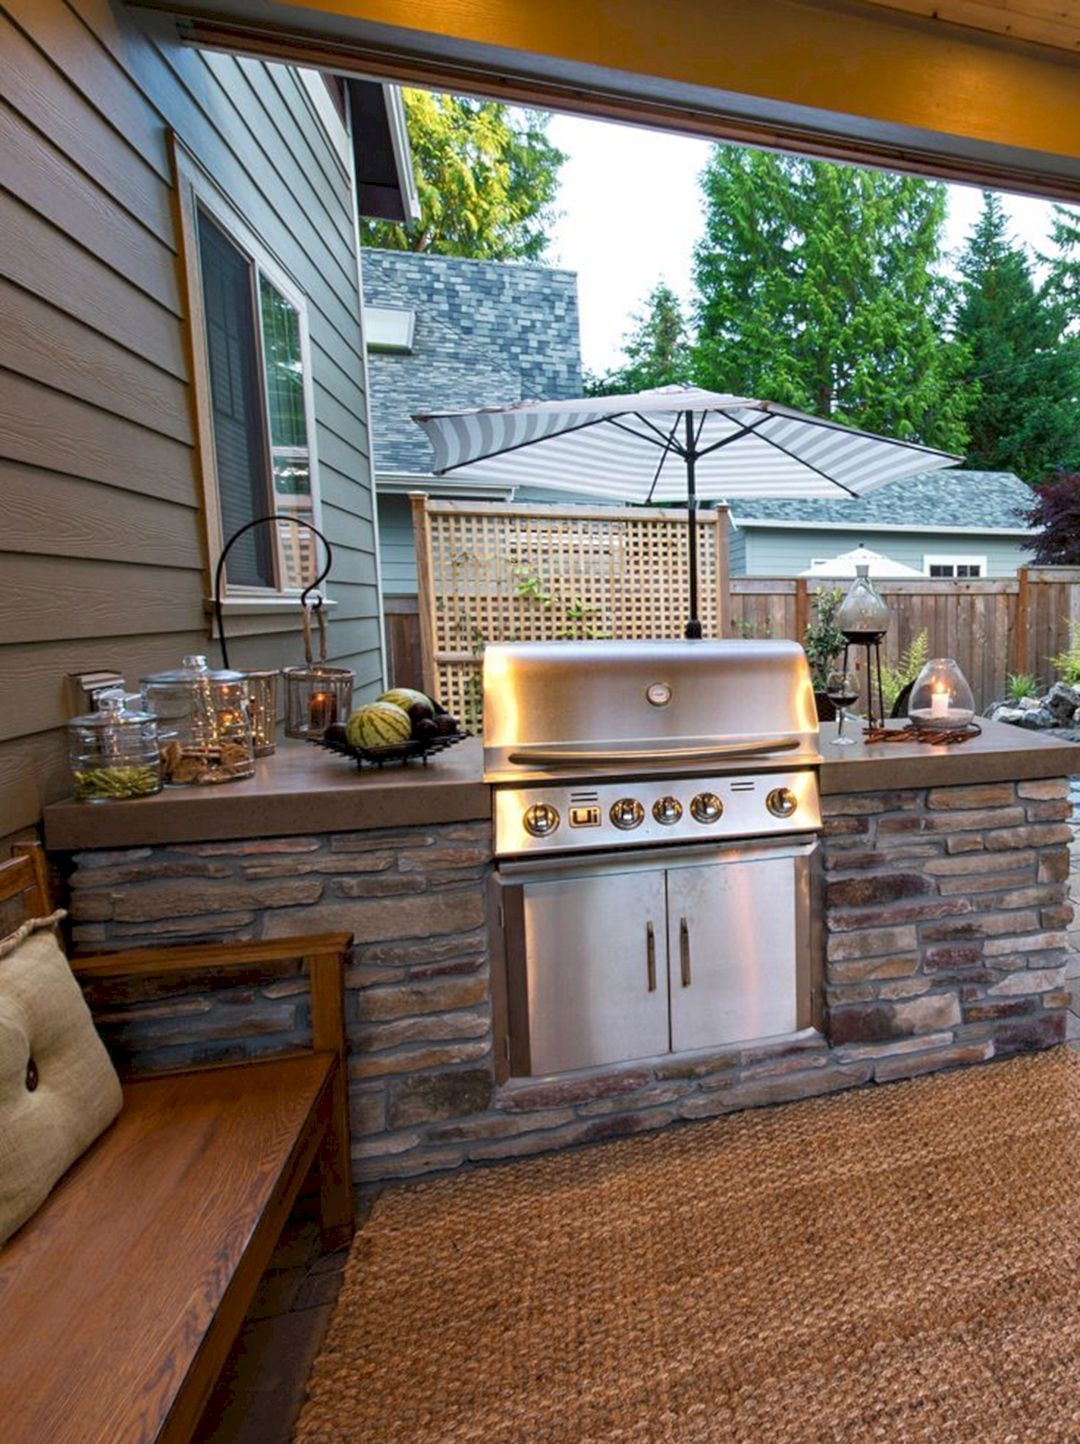 outdoor kitchen ideas on do it yourself network we share outdoor kitchen essentials from on outdoor kitchen essentials id=33212